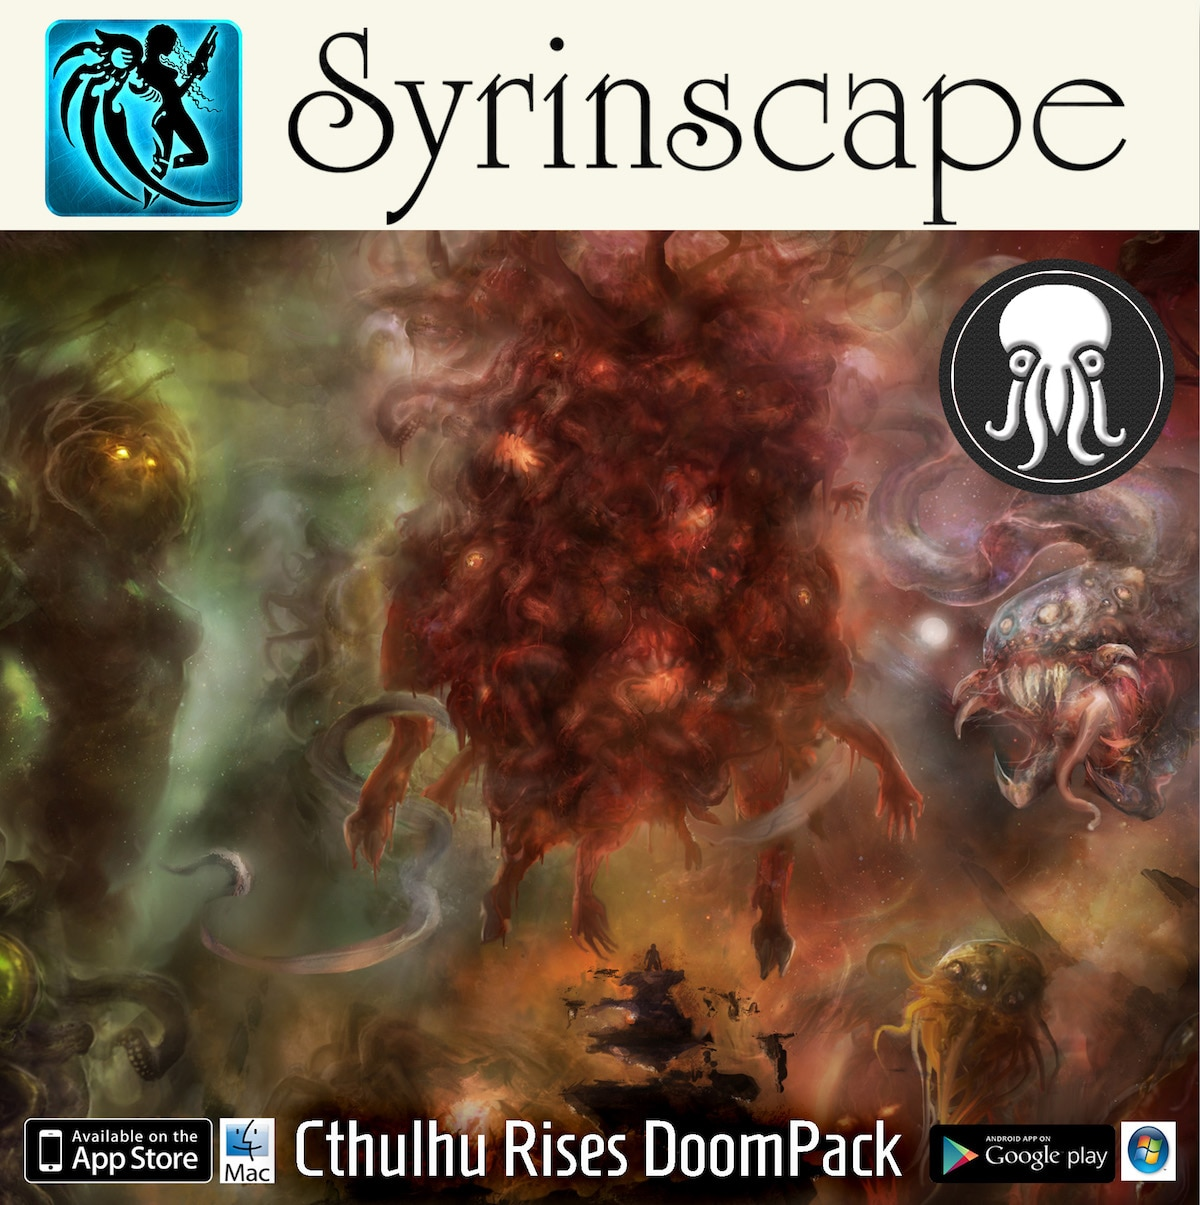 Press Picture Cthulhu rises Doompack - Exclusive: Benjamin Loomes Talks Syrinscape and How Audio Elevates Tabletop RPGs